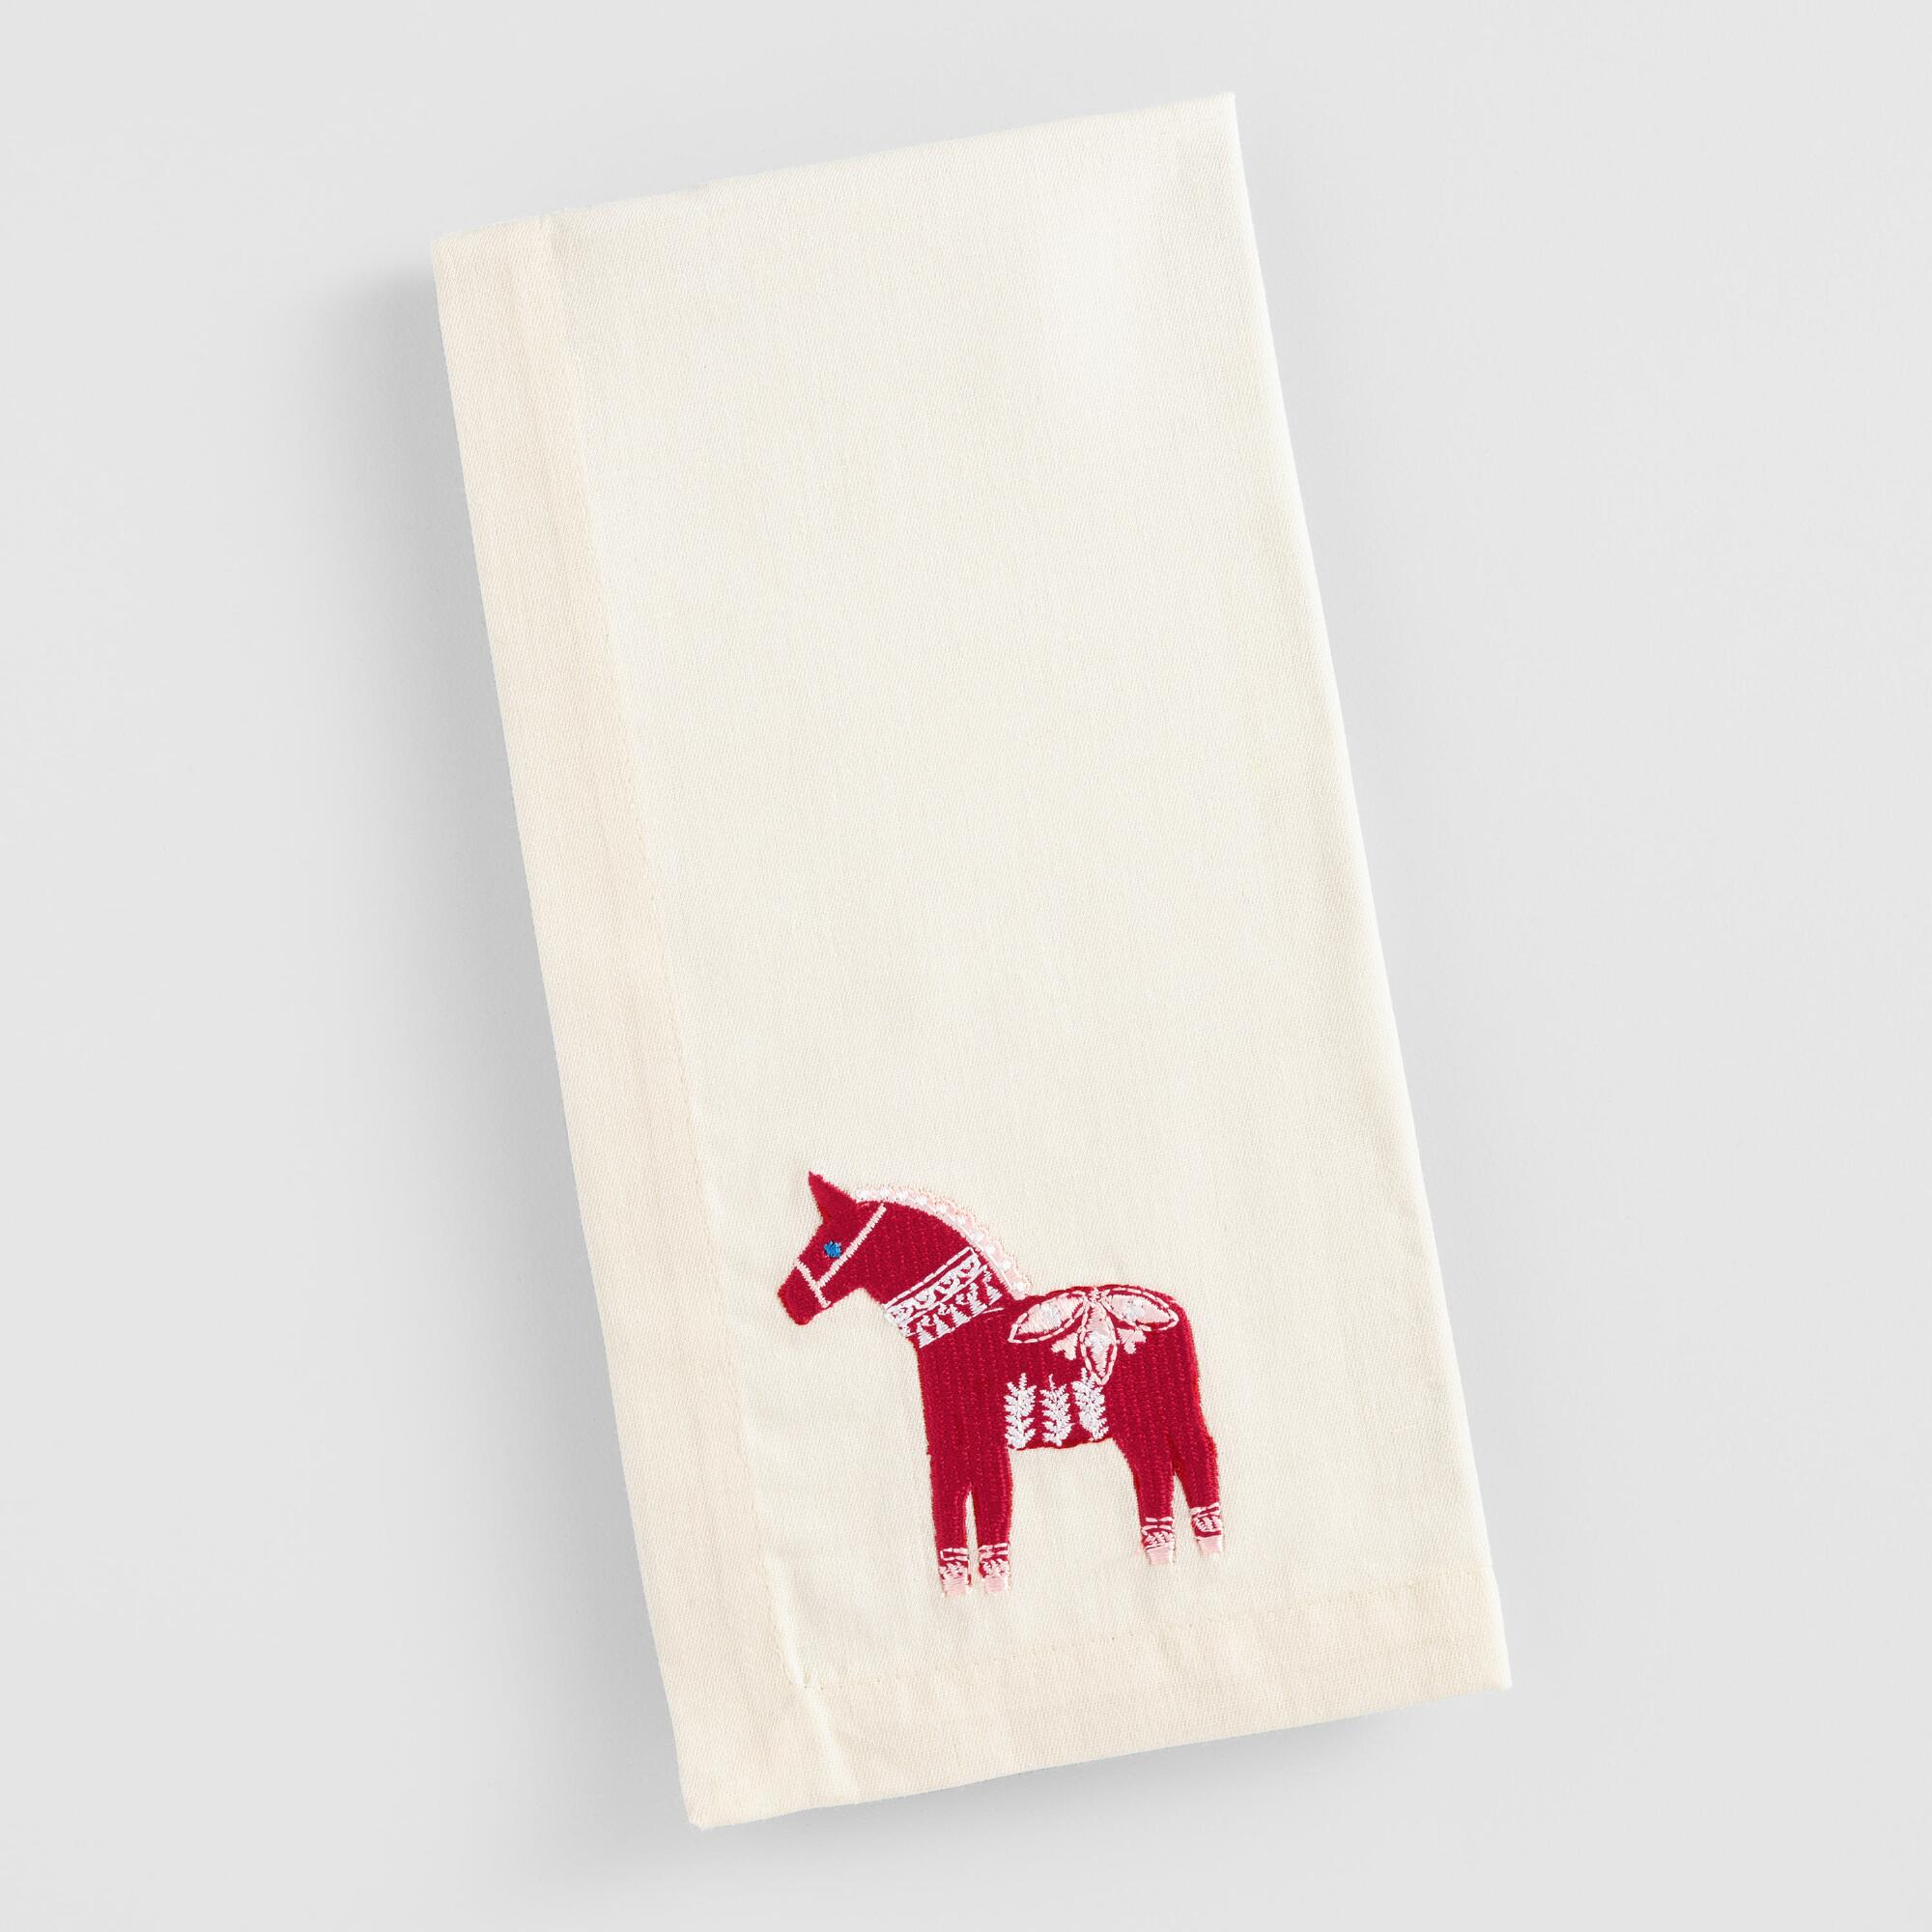 Embroidered Scandinavian Horse Napkins